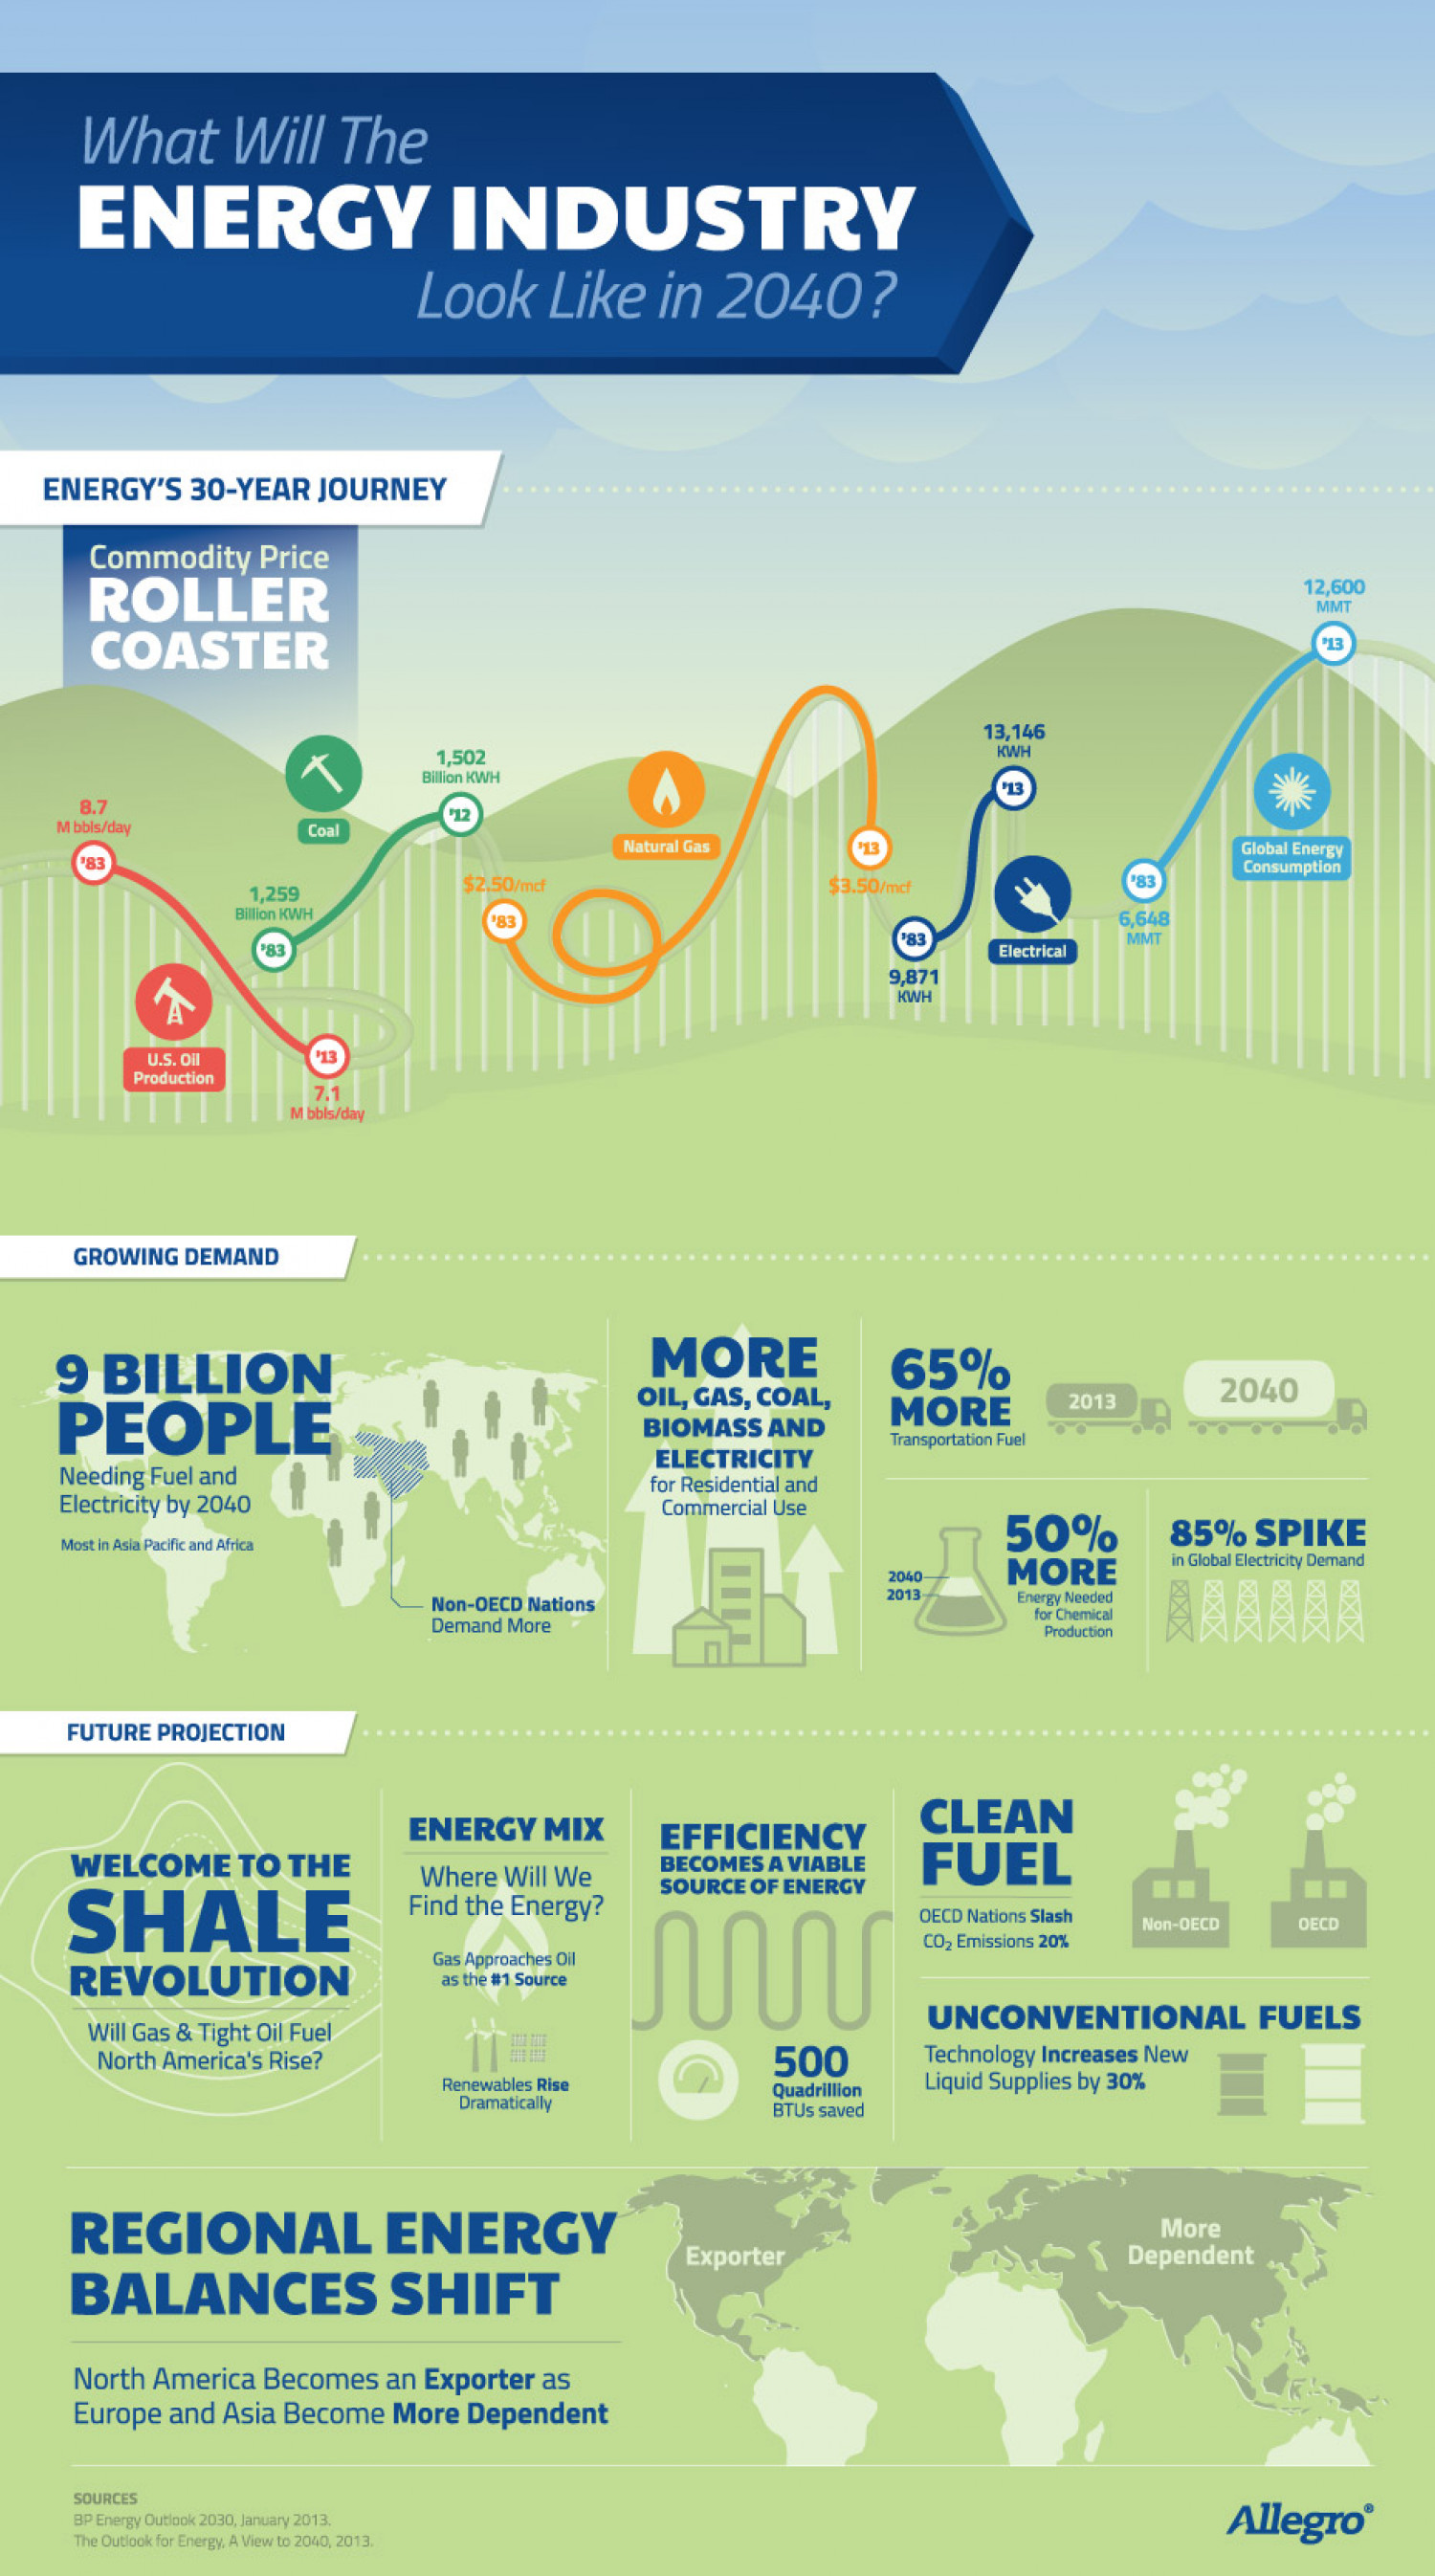 What Will The Energy Industry Look Like in 2040? Infographic